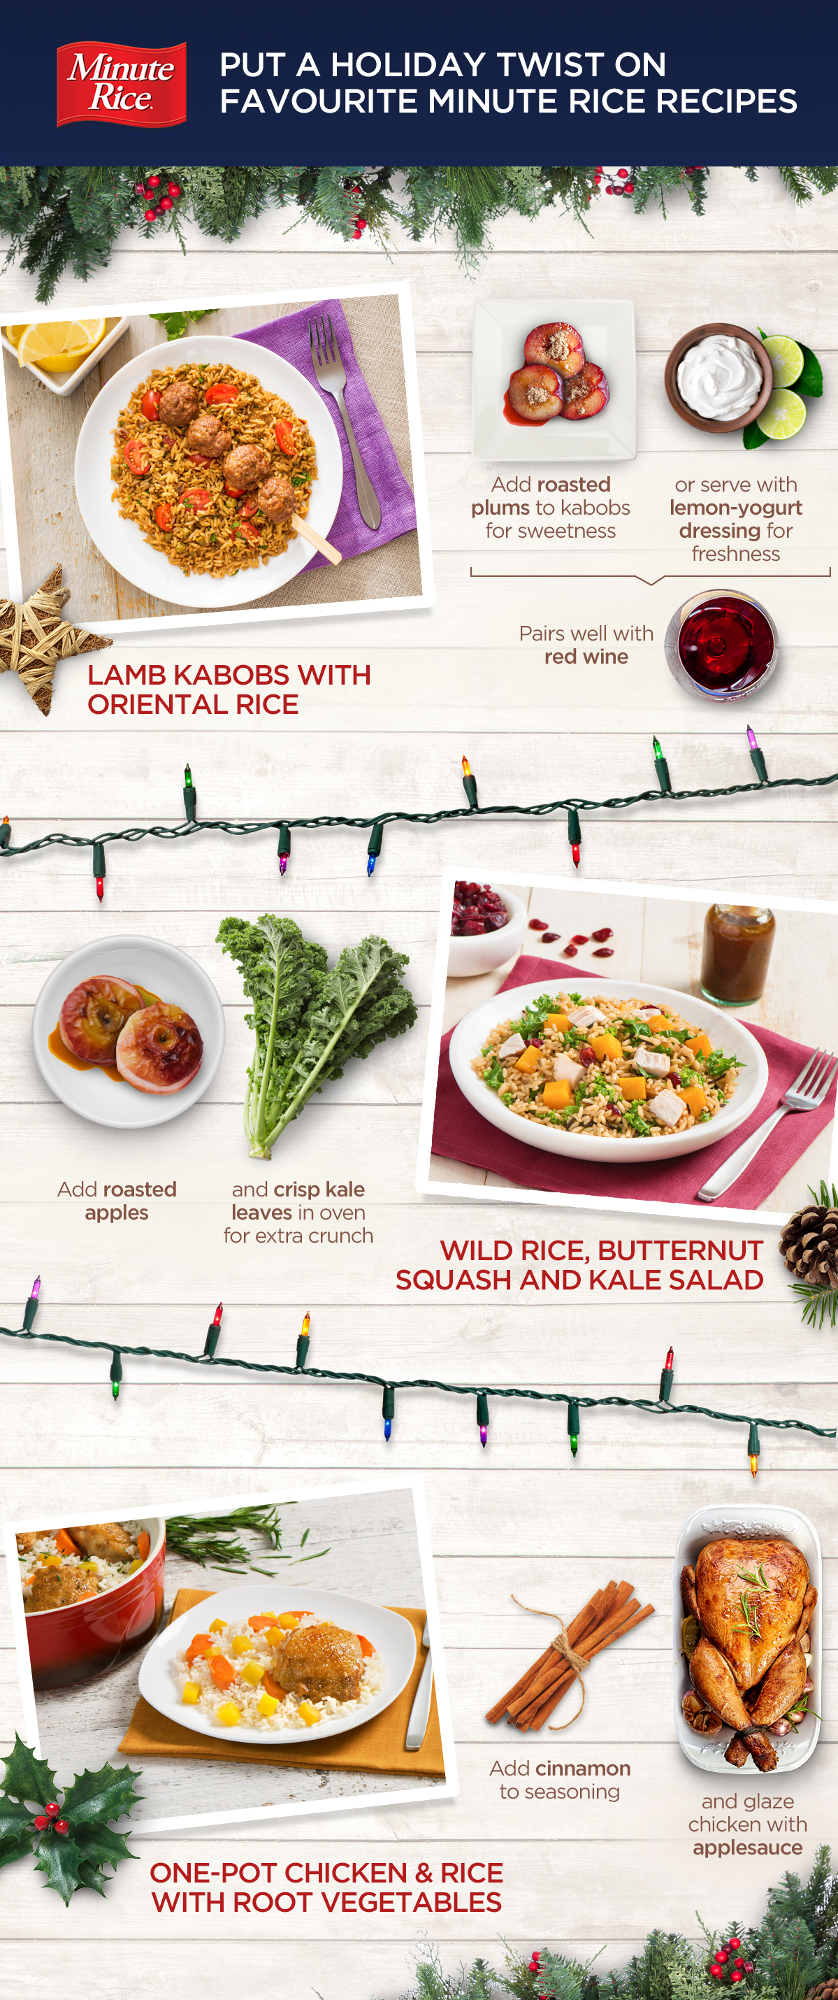 put-holiday-twist-on-favourite-minute-rice-recipes